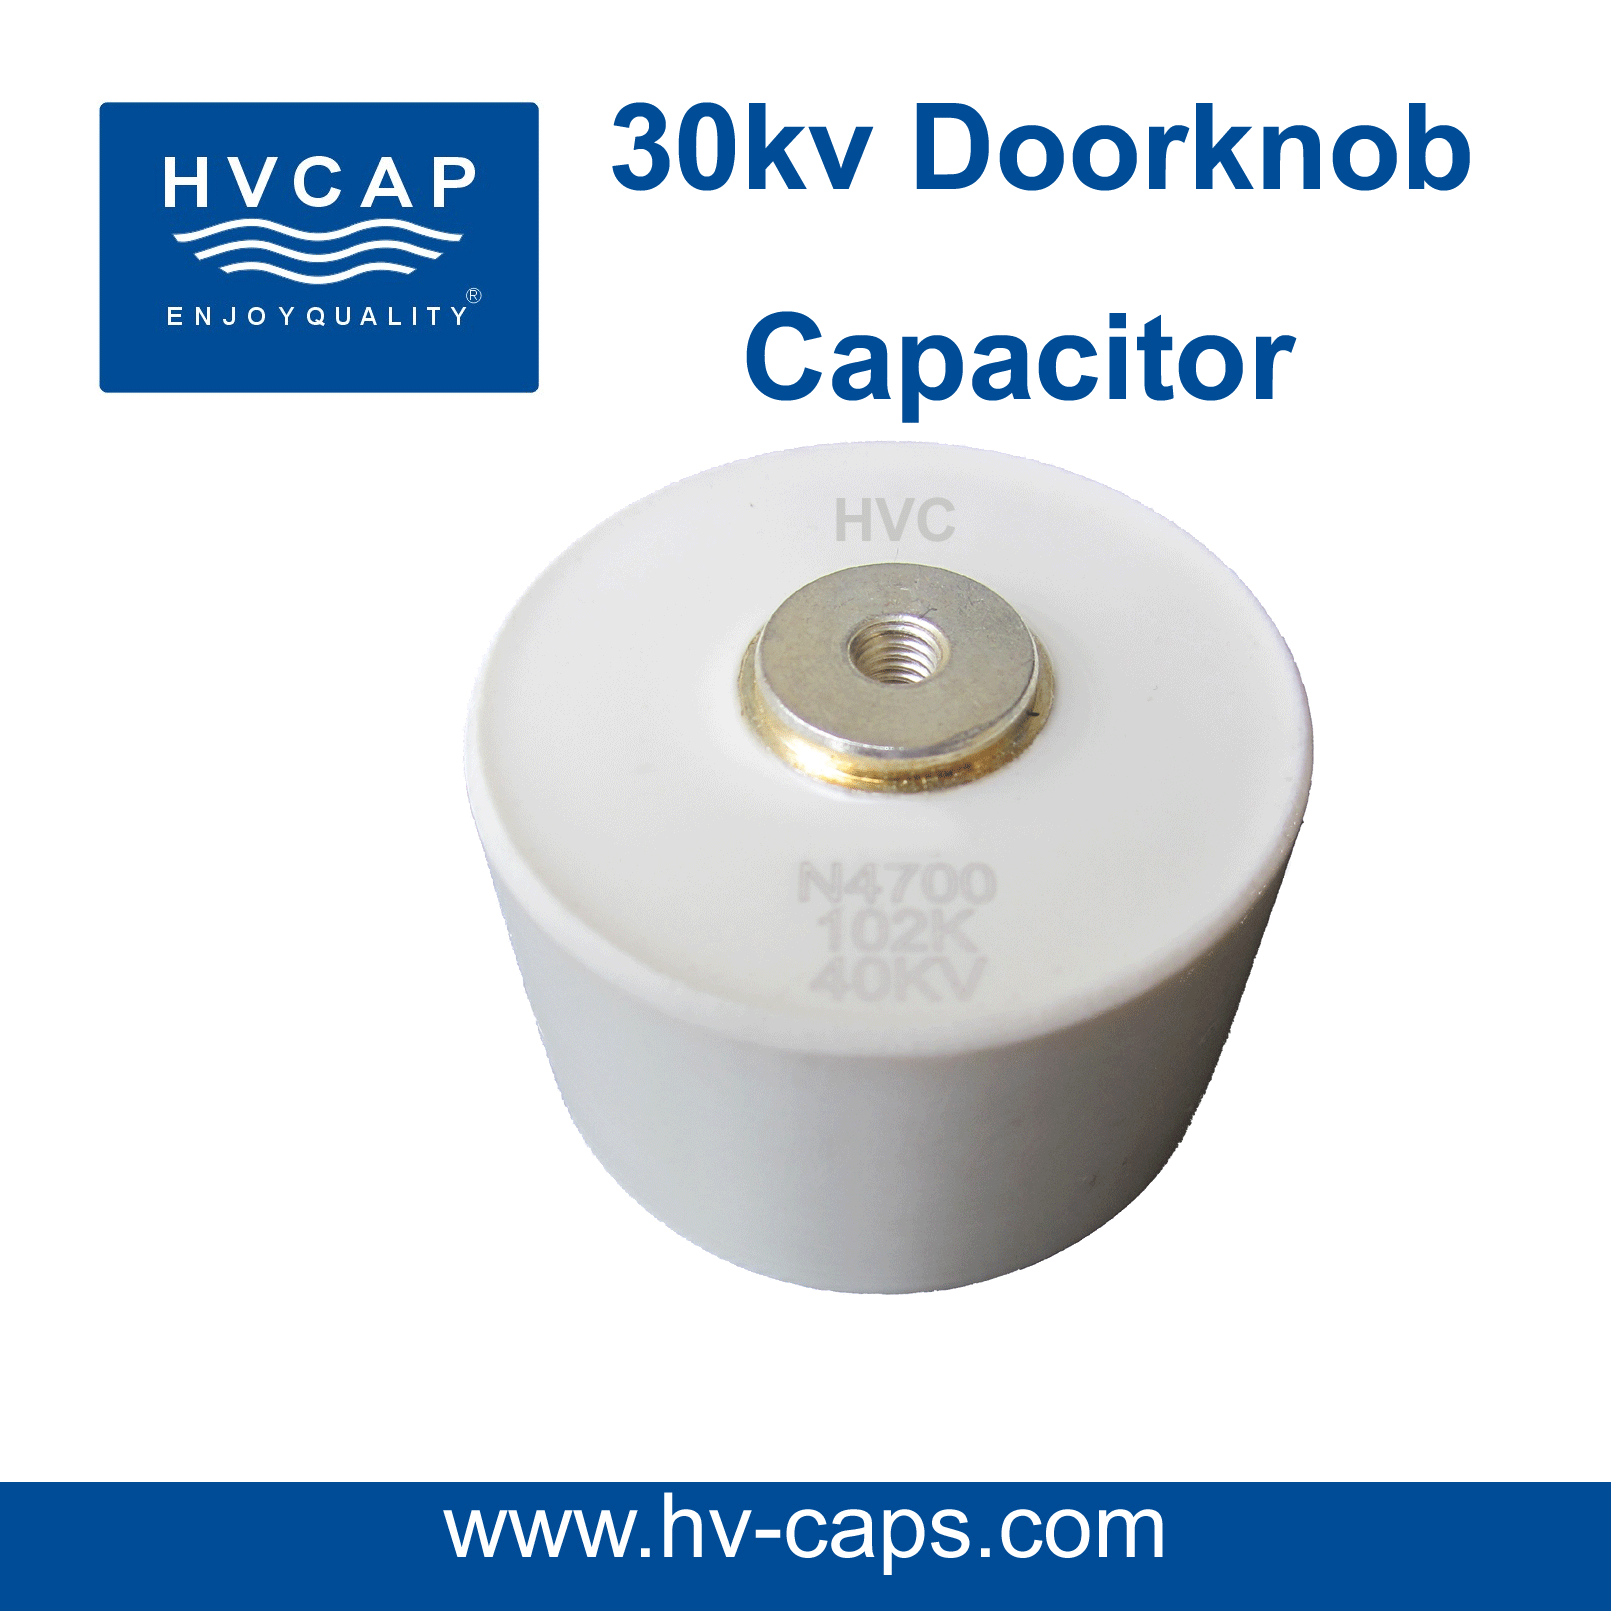 High Voltage Ceramic Doorknob Capacitor 30kv specification.